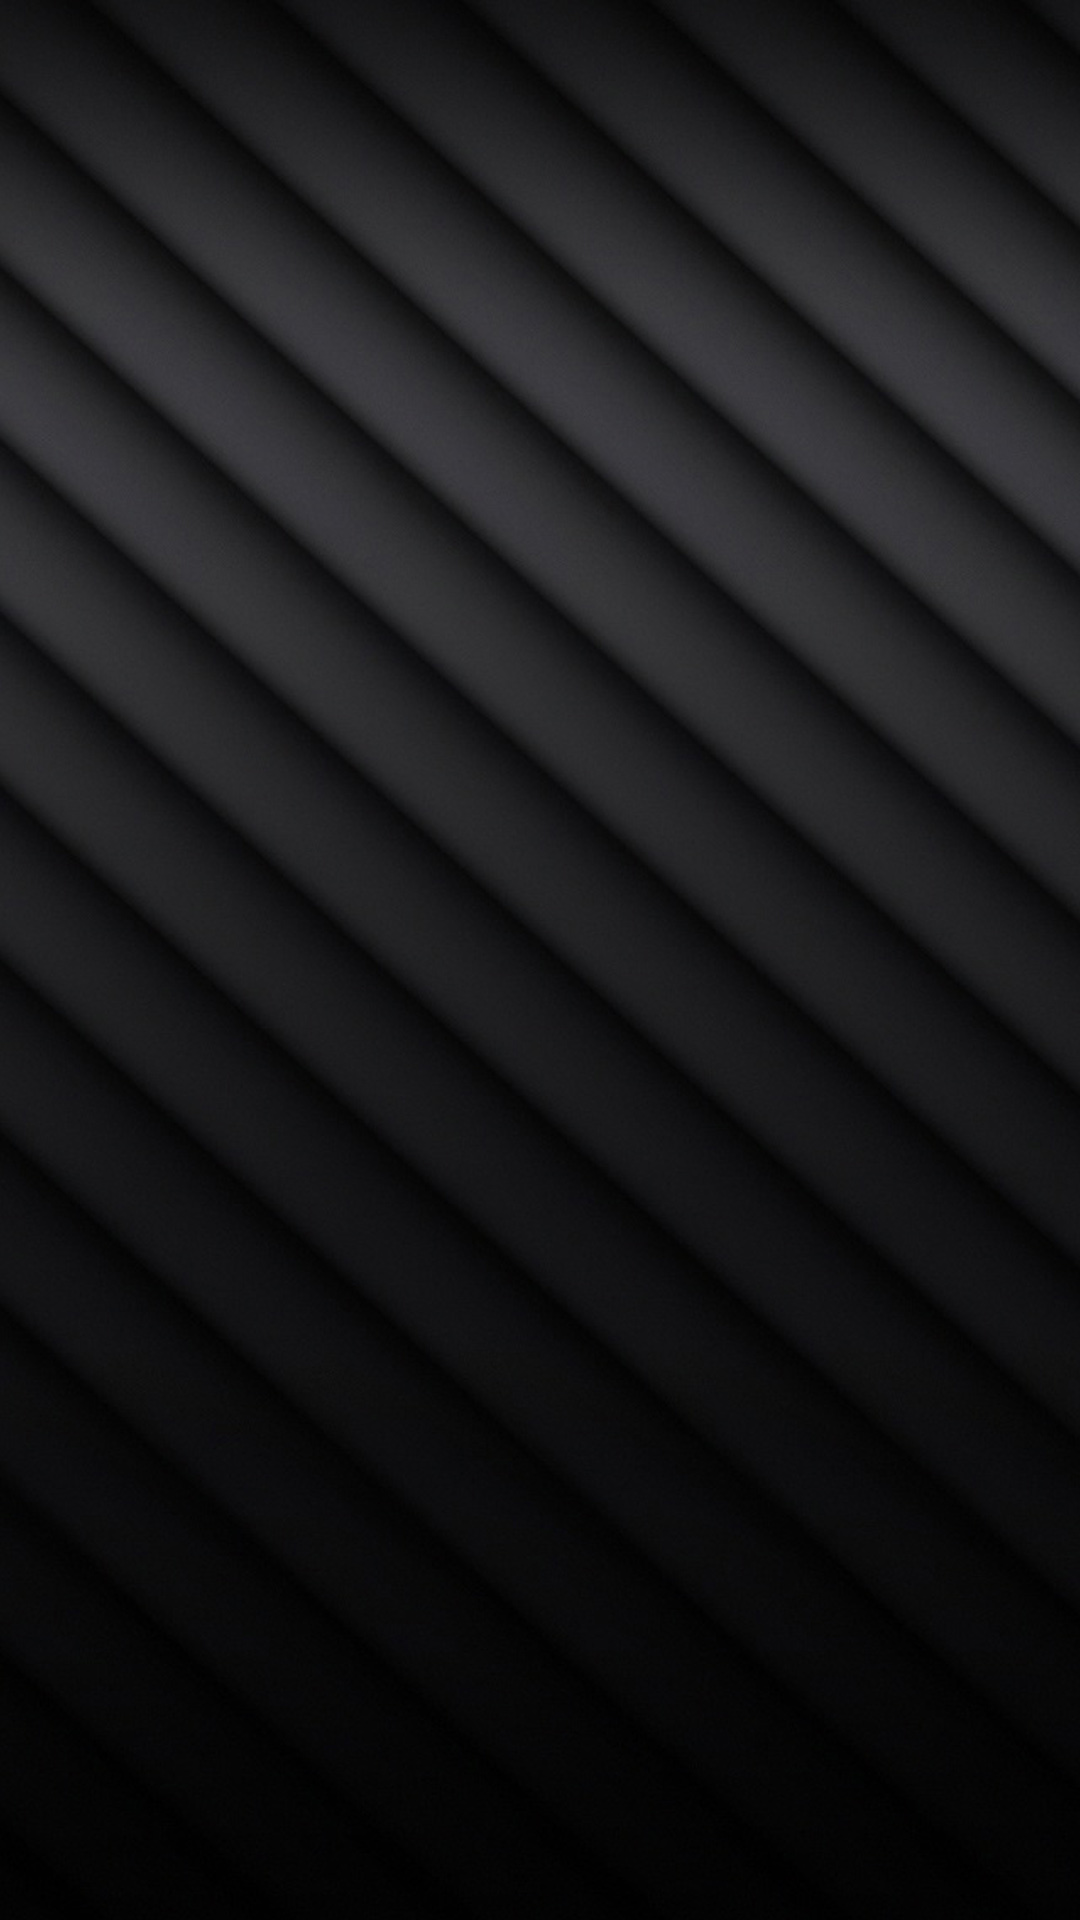 Abstract-Black-Stripes-Note-Samsung-Galaxy-Note-wallpaper-wp5803268